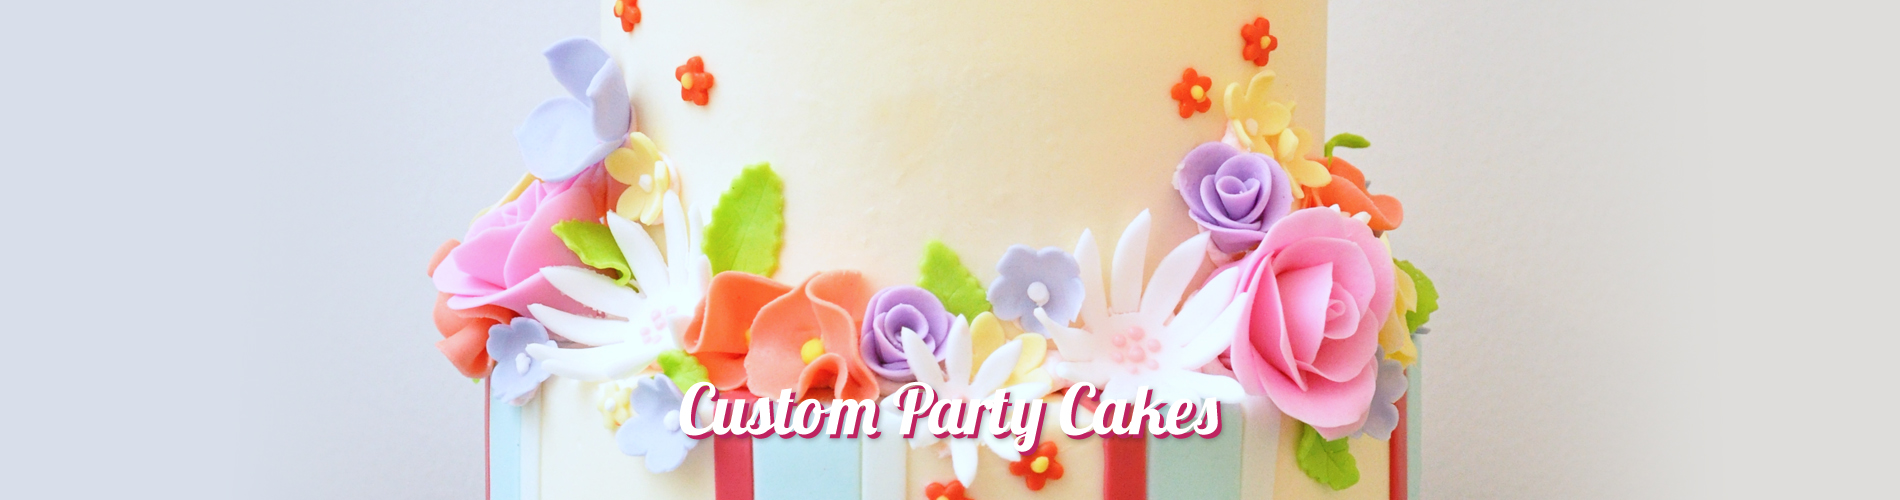 CustPartyCakes-SweetPeaSlider-1215